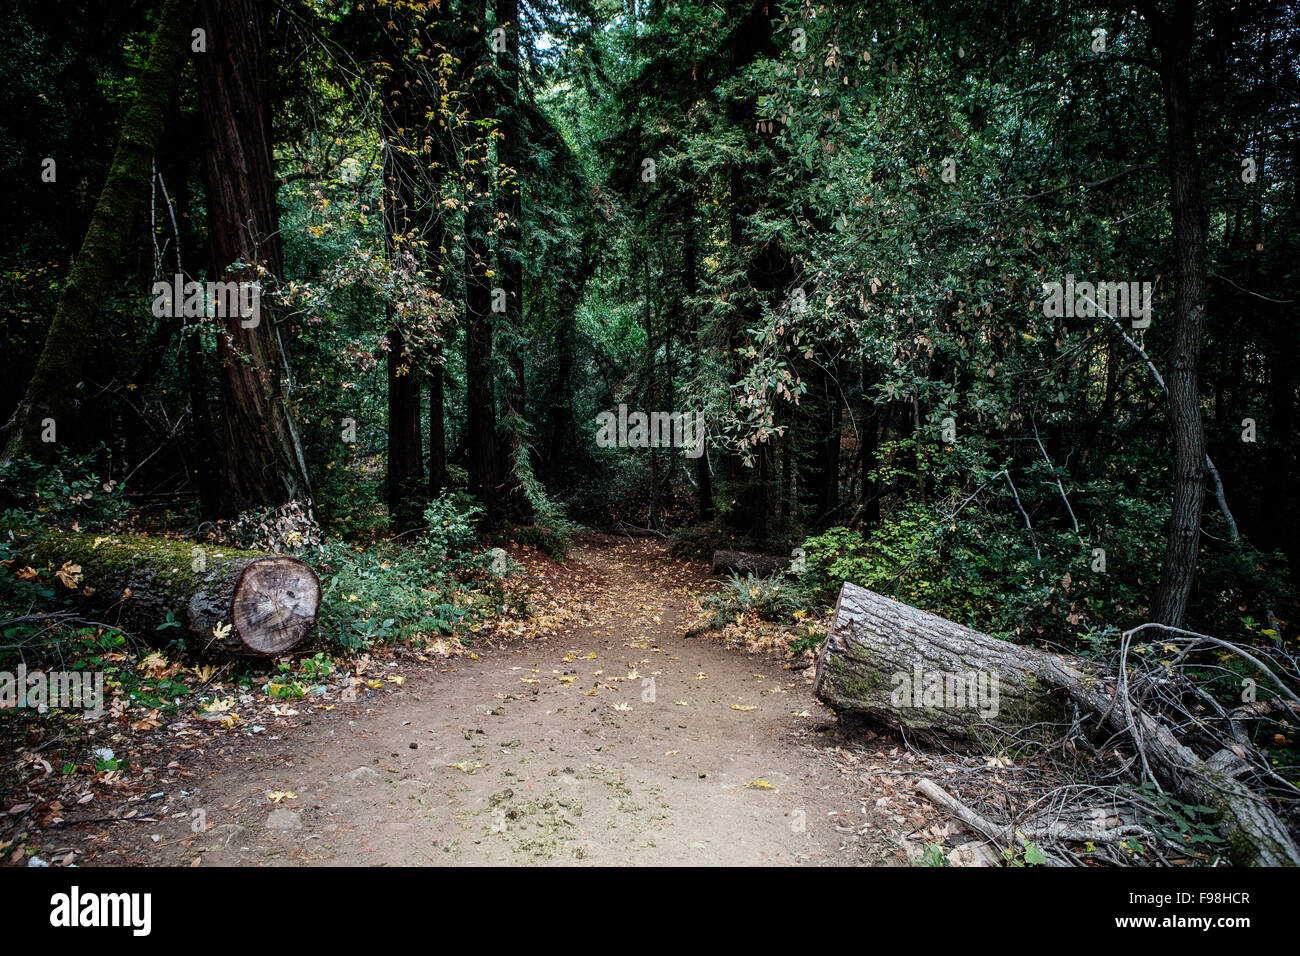 A wide trail leading into a grove of redwoods trees. - Stock Image